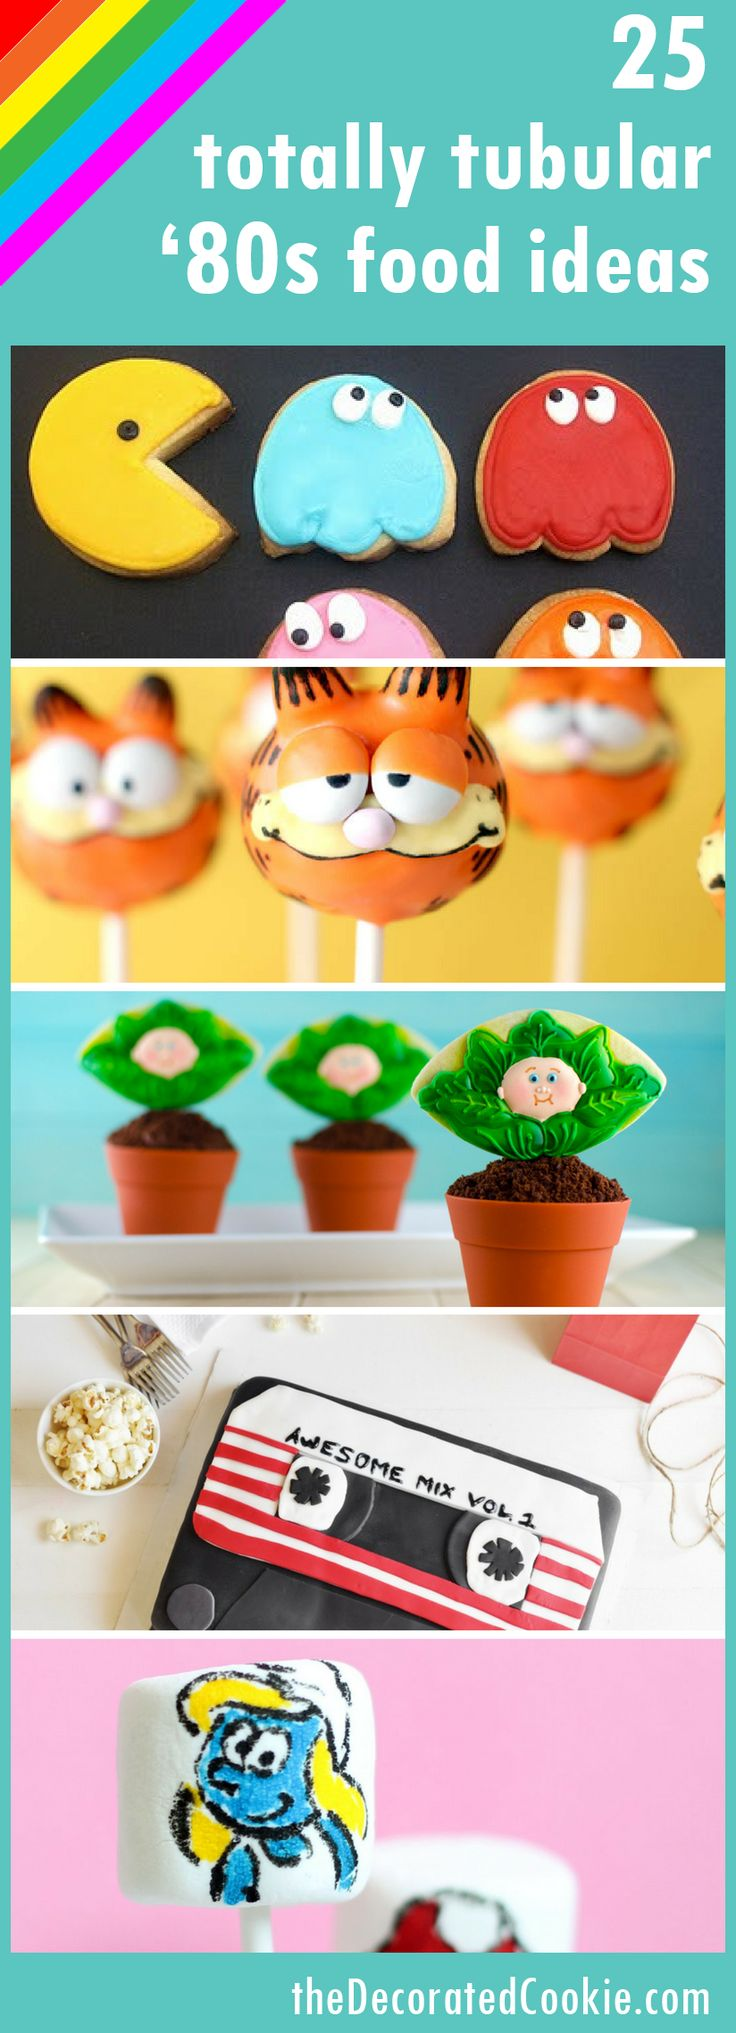 80s party fun food ideas roundup